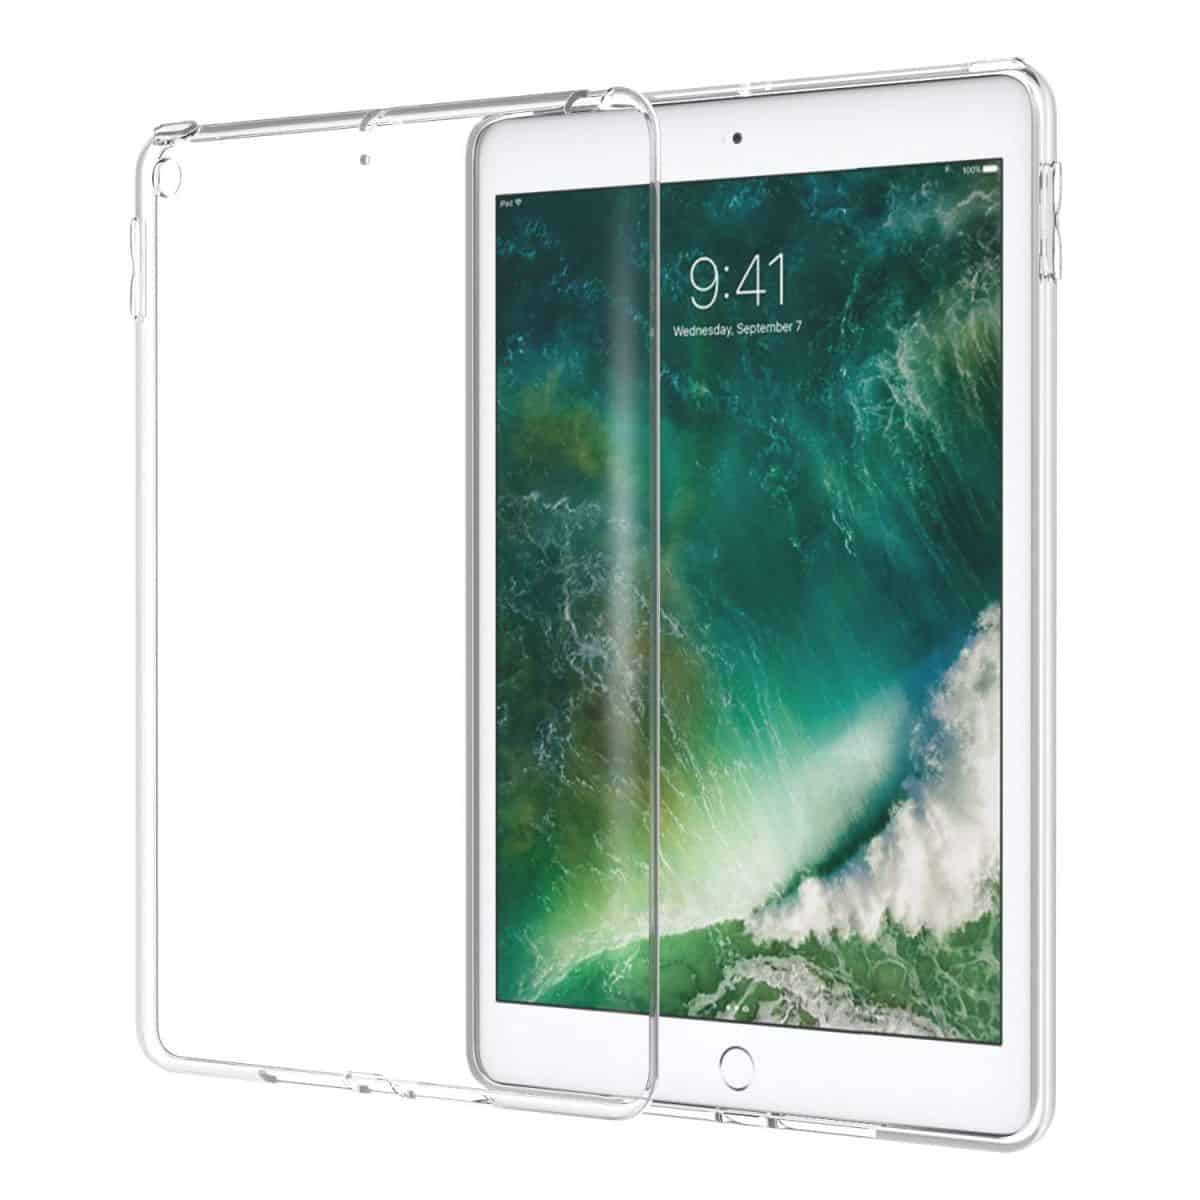 Atic Fit iPad Skin | Essential iPad Accessories